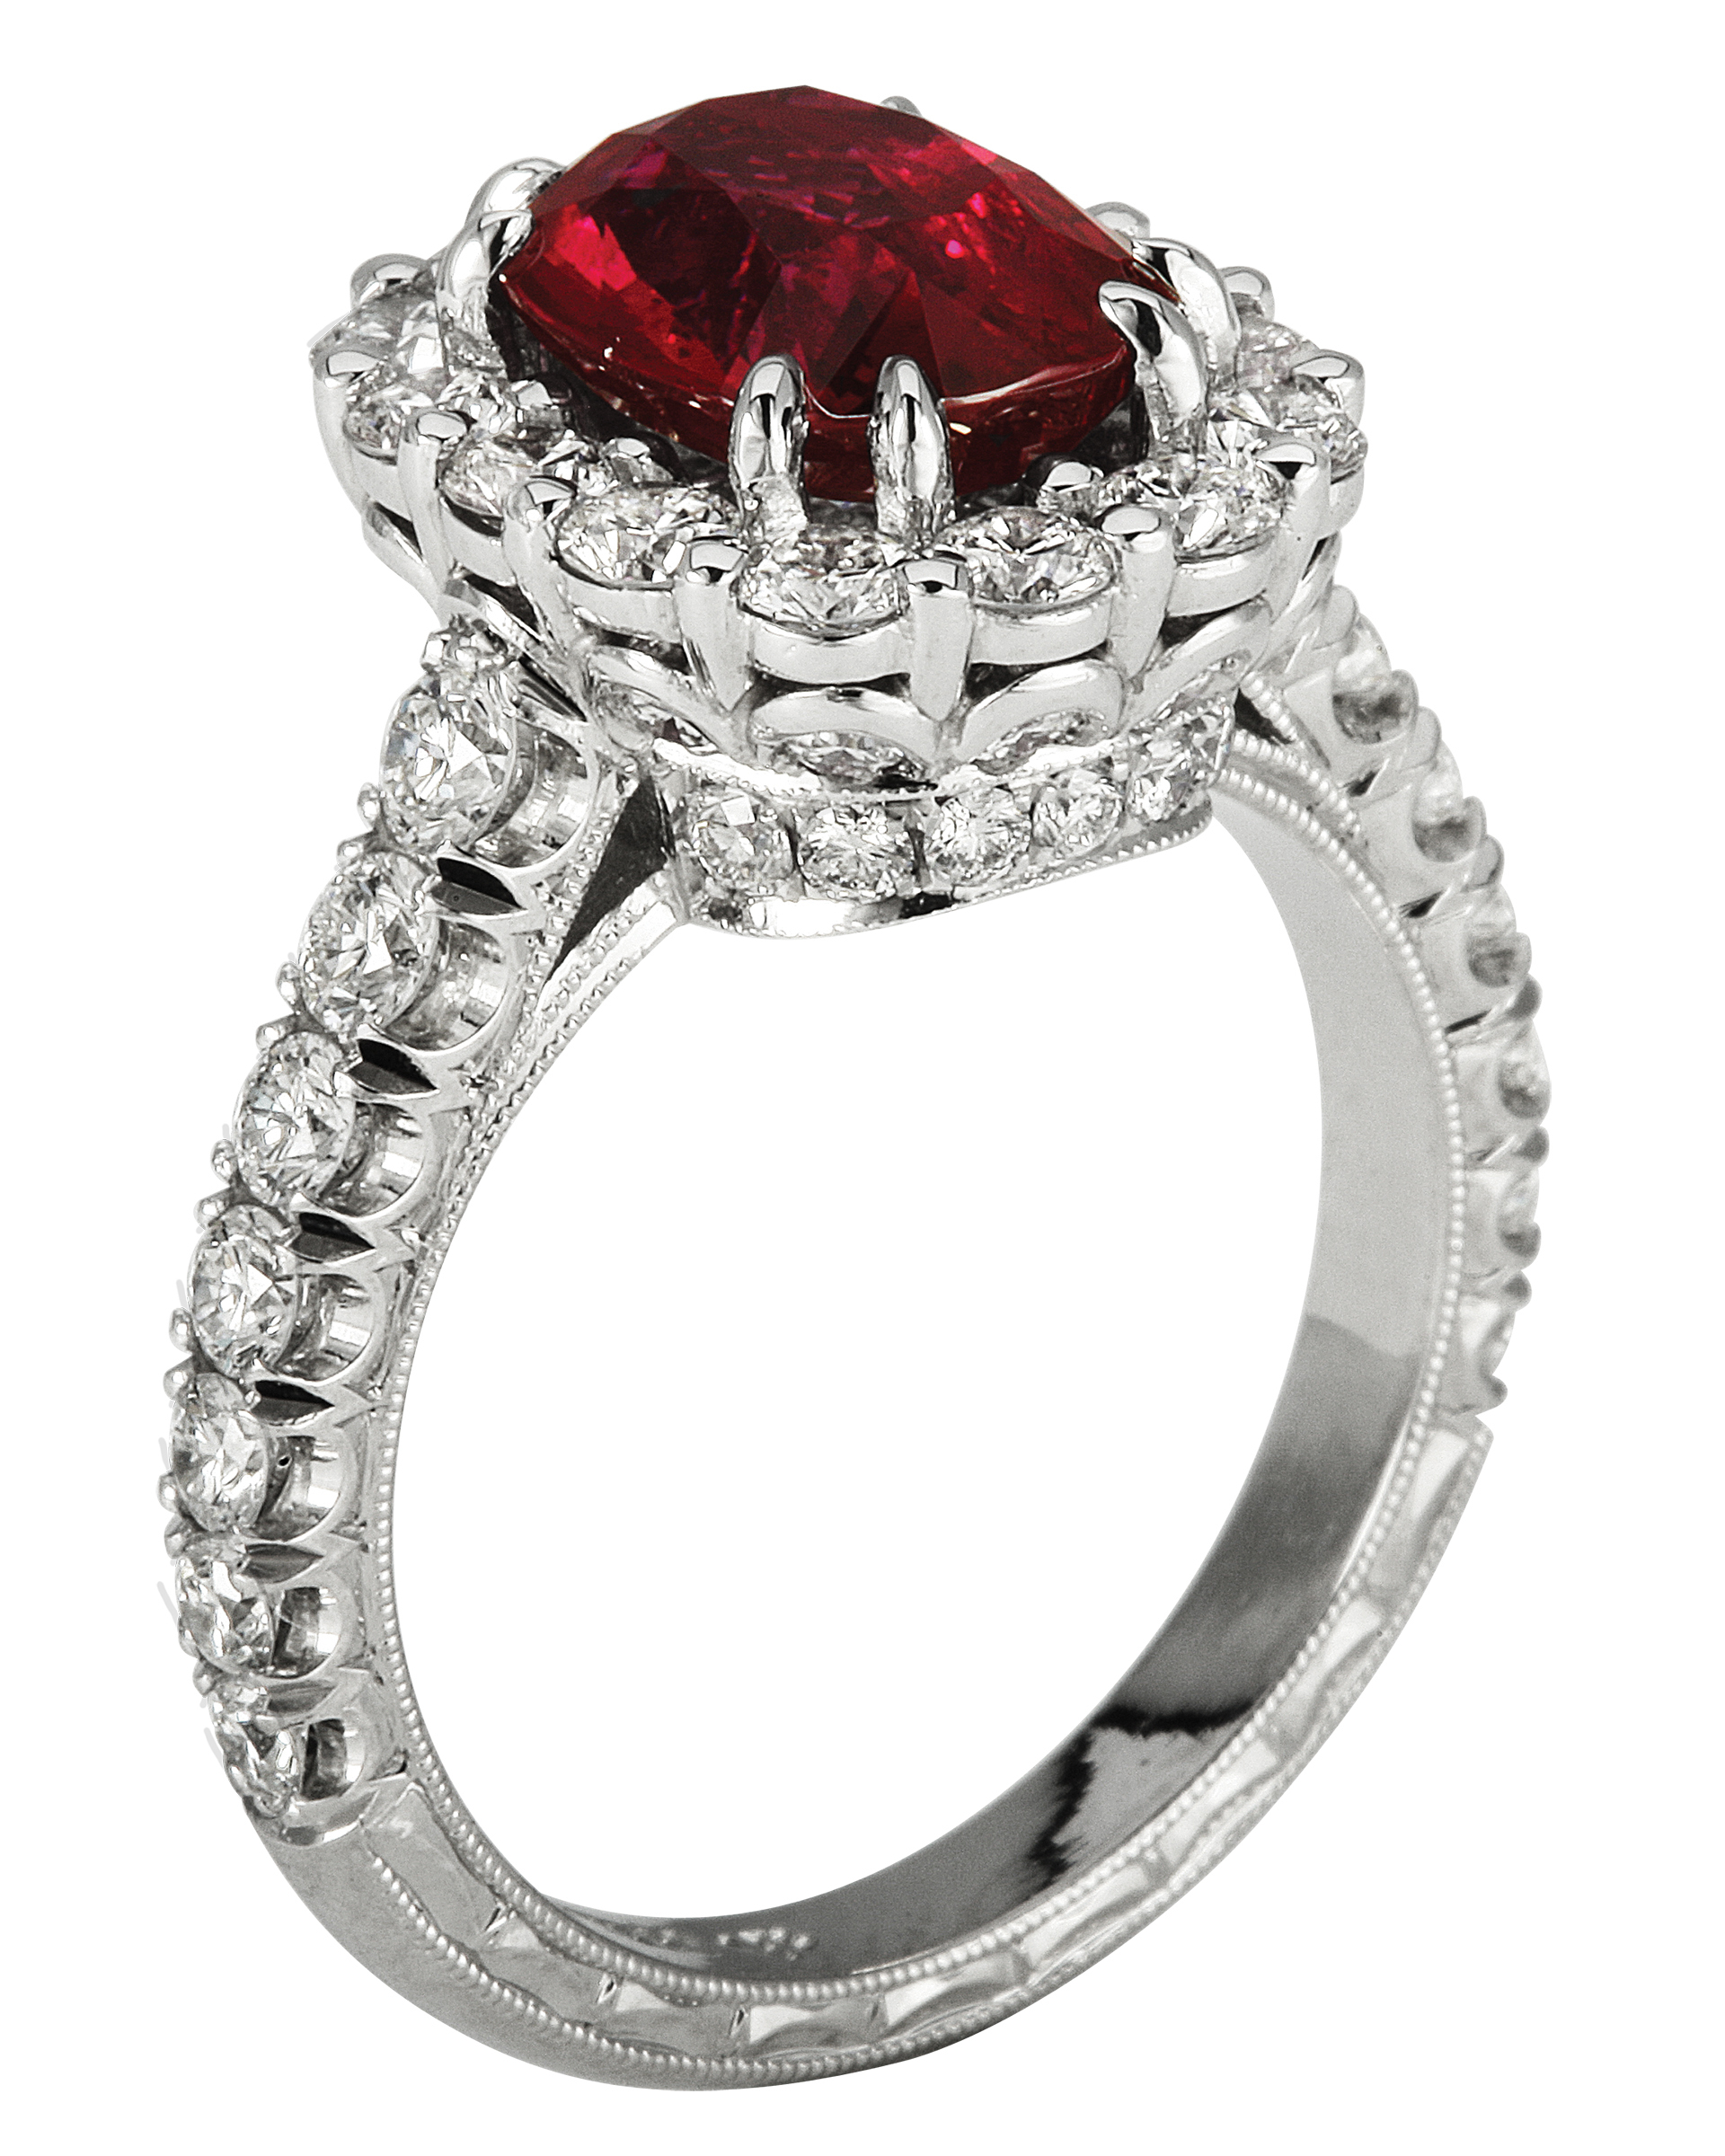 Ruby Engagement Ring with Halo on Platinum Setting